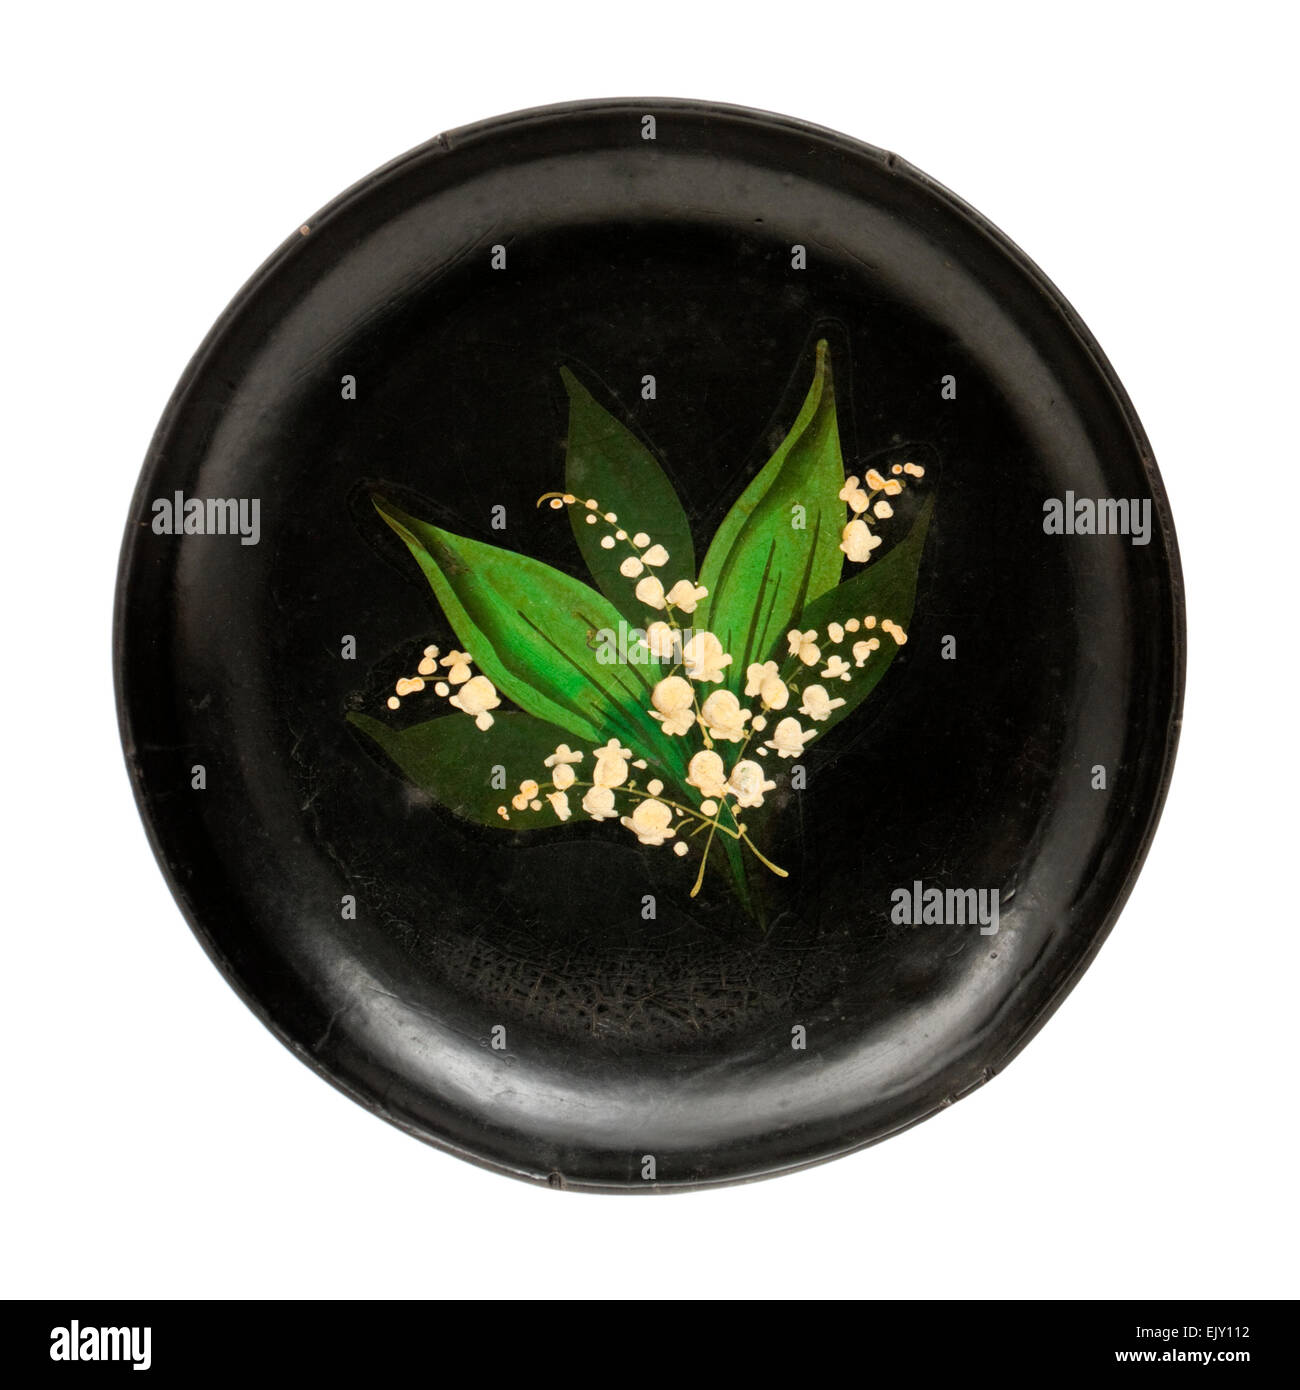 Antique Papier-mâché plate with Lily-of-the-Valley floral decoration - Stock Image